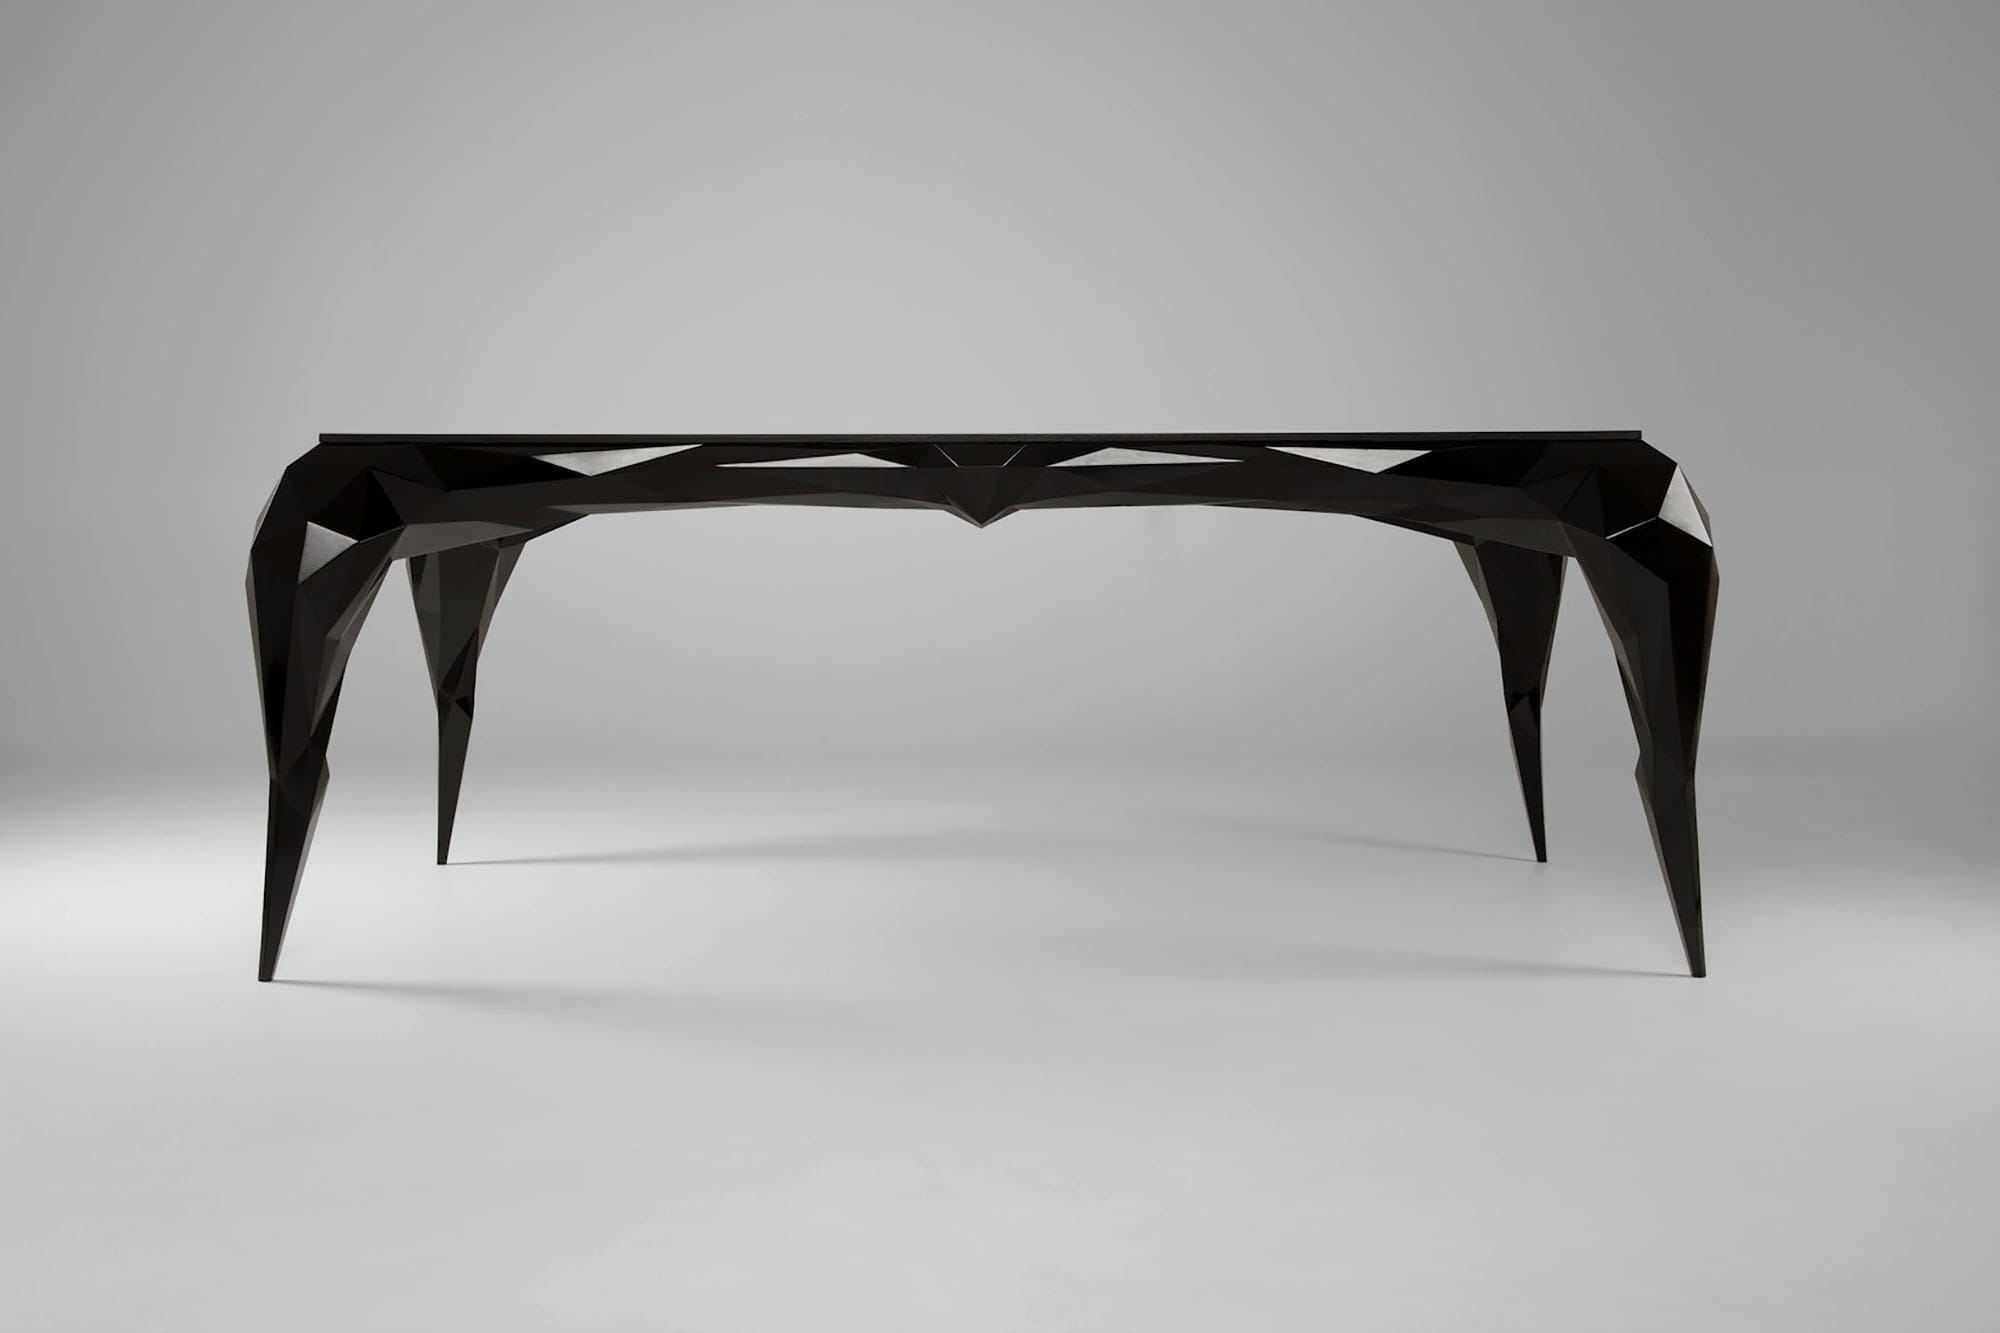 jasser studio - skin collection animal design furniture geometry black desk